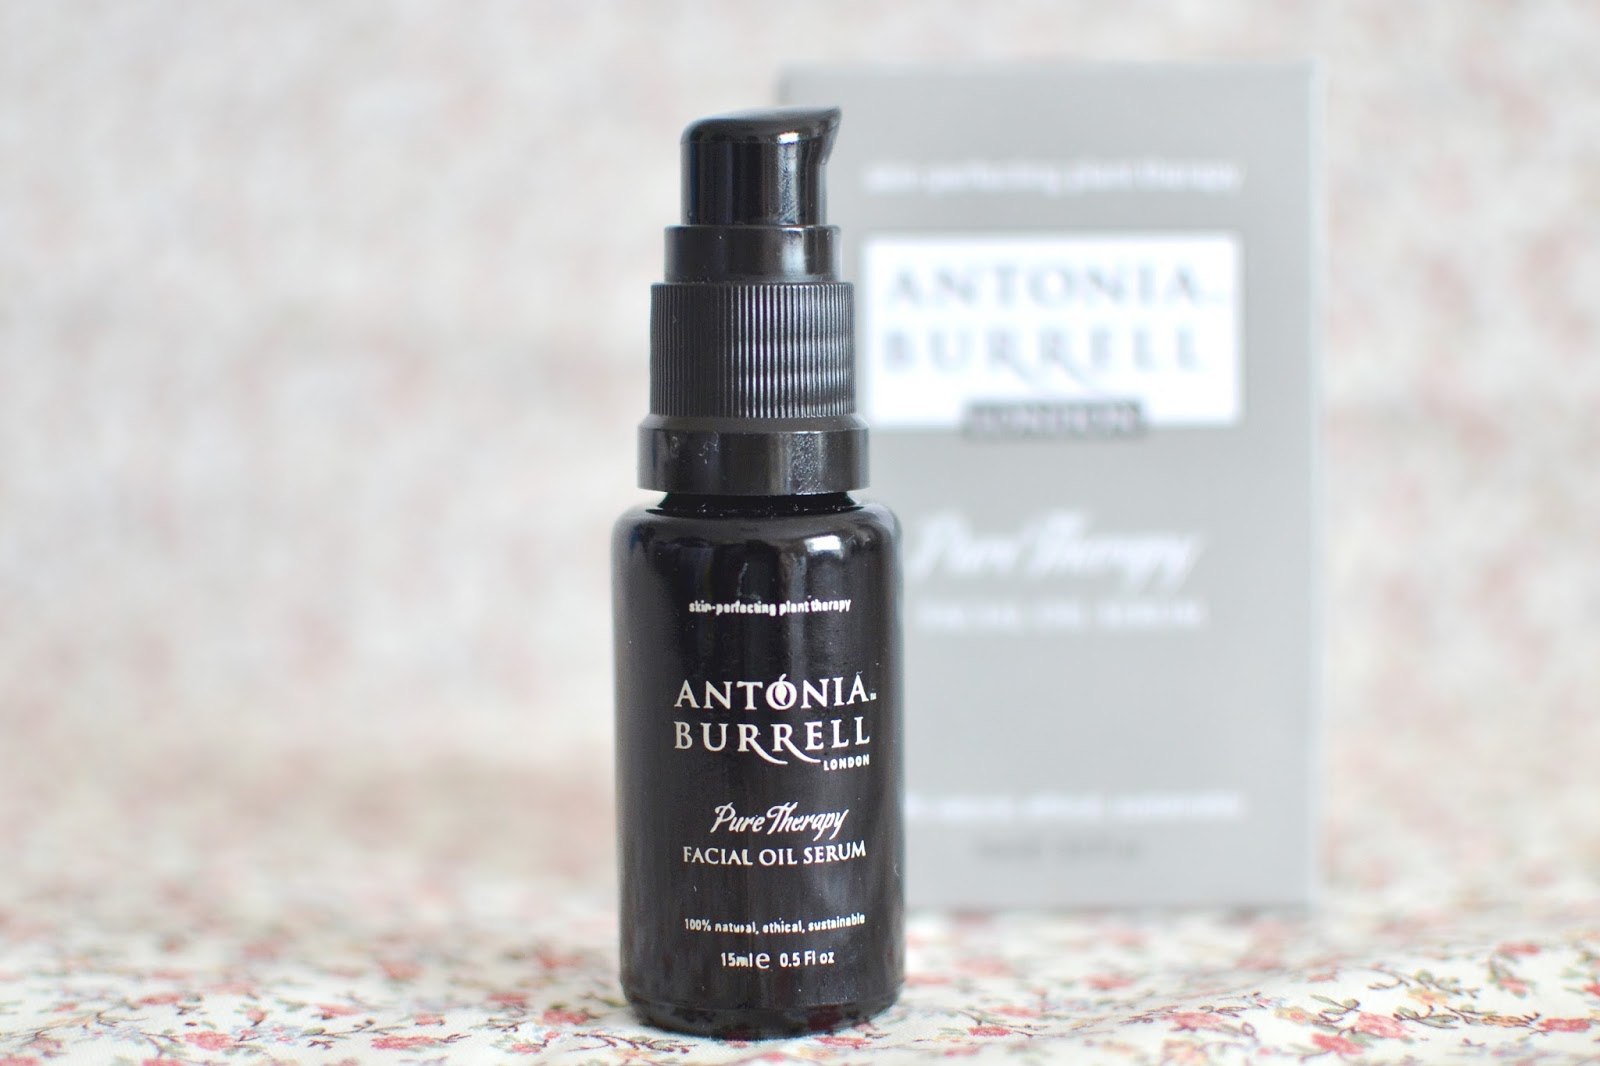 Pure therapy facial oil serum, natural oil serum, antonia burrell oil serum review